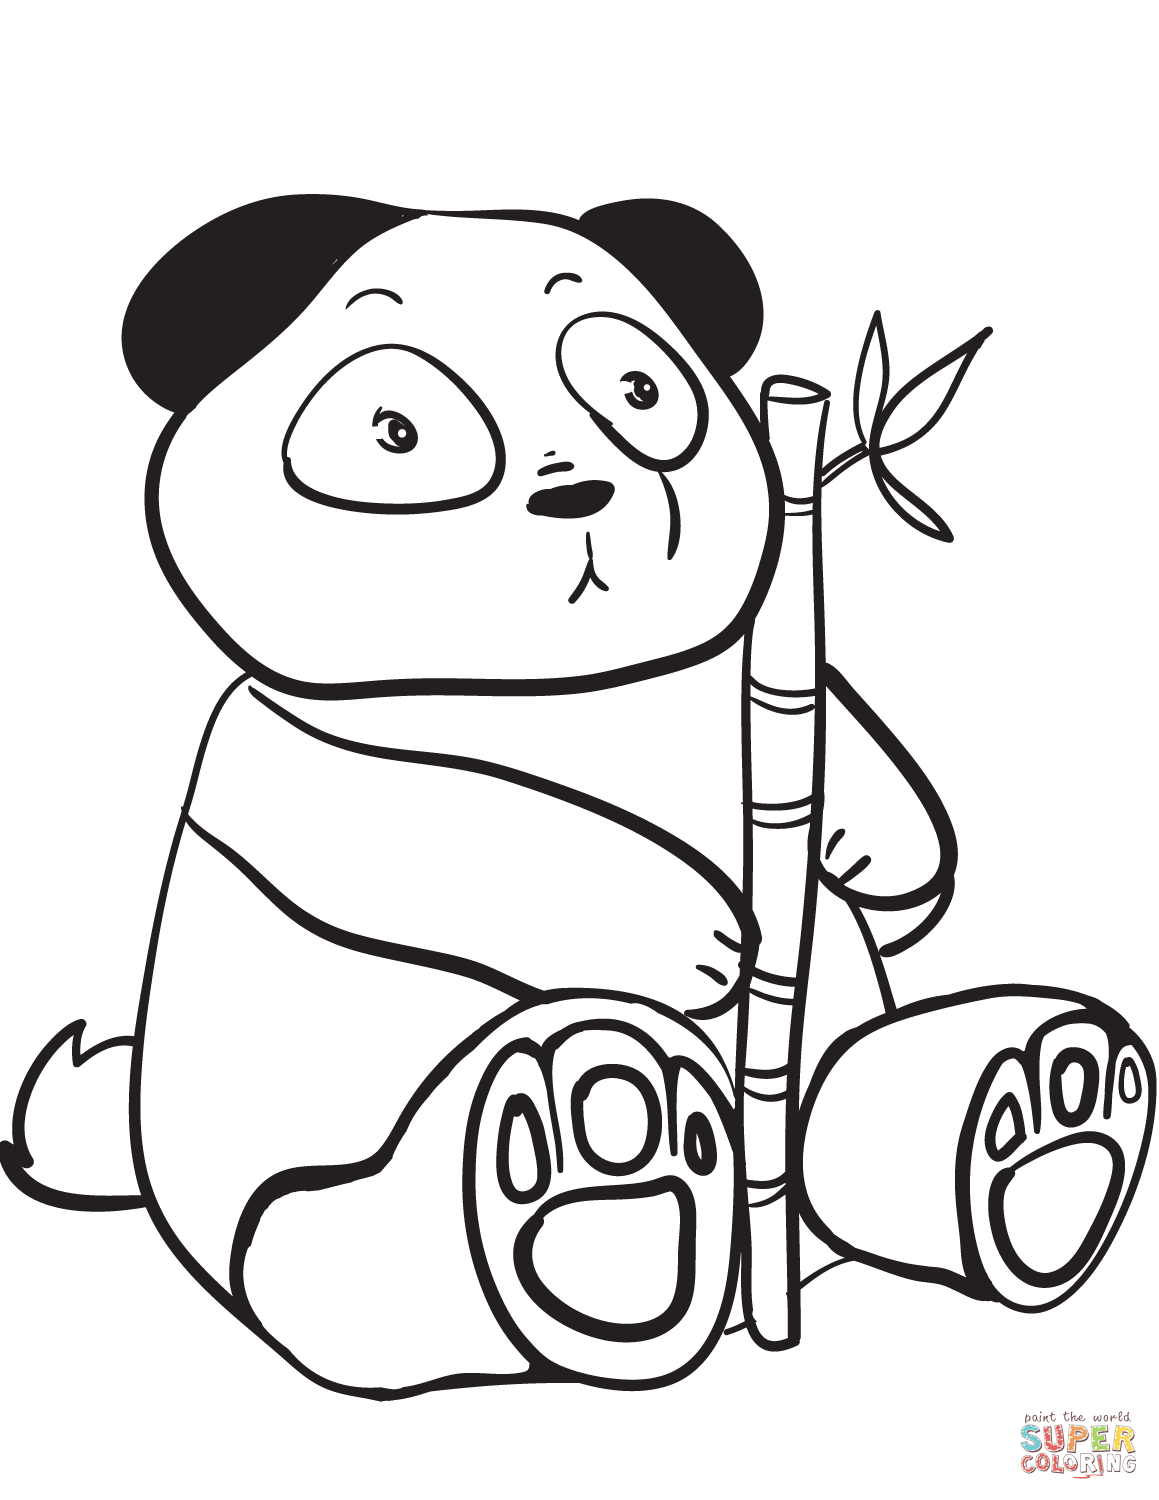 Cute Panda Coloring Pages Coloring Home Panda Coloring Page